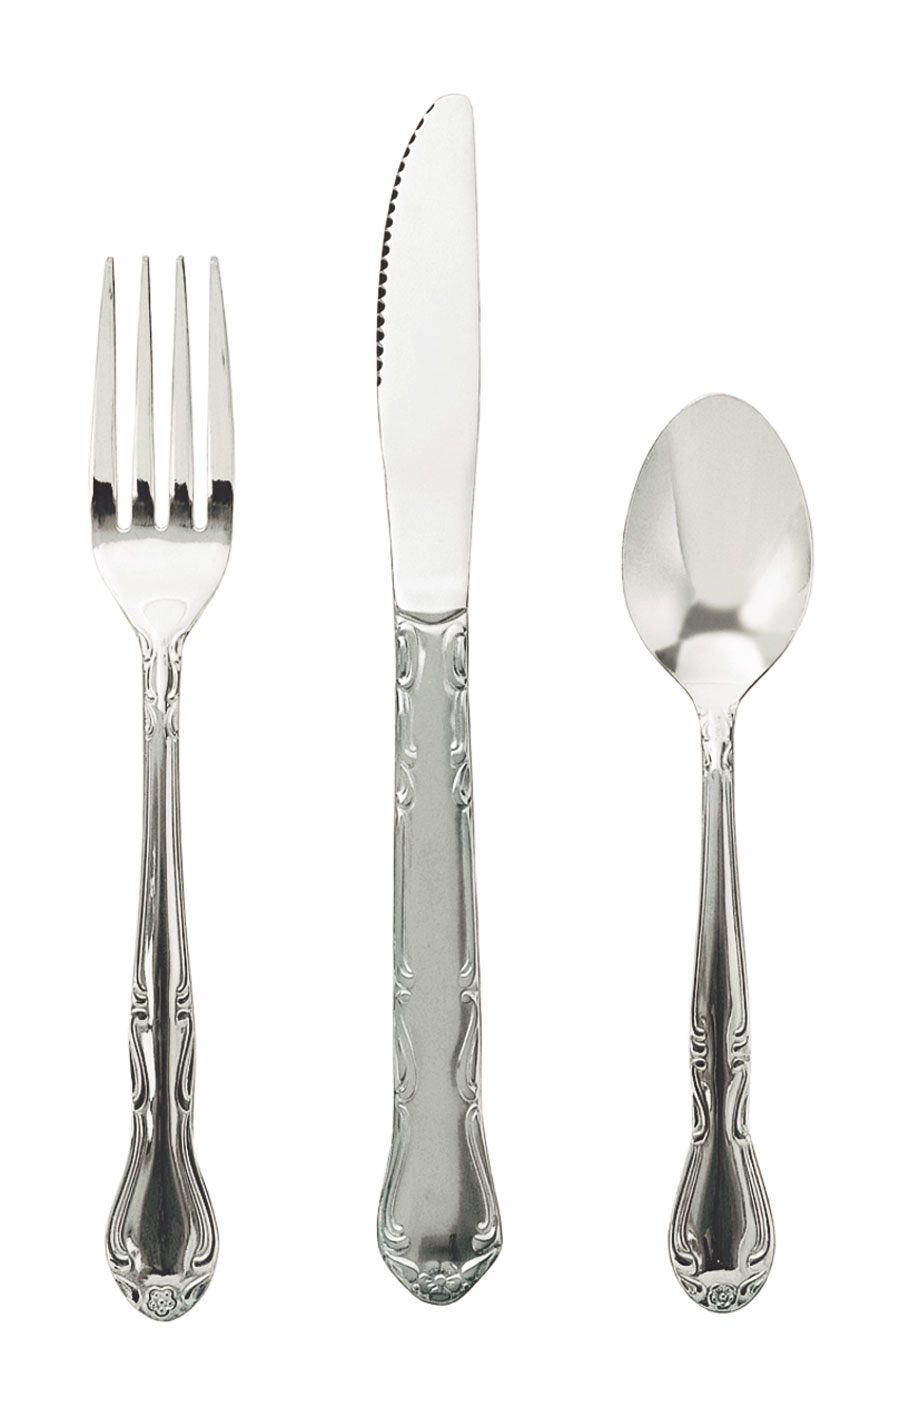 Update International CE-206 Bright Polish Claridge Salad Fork - 1 doz